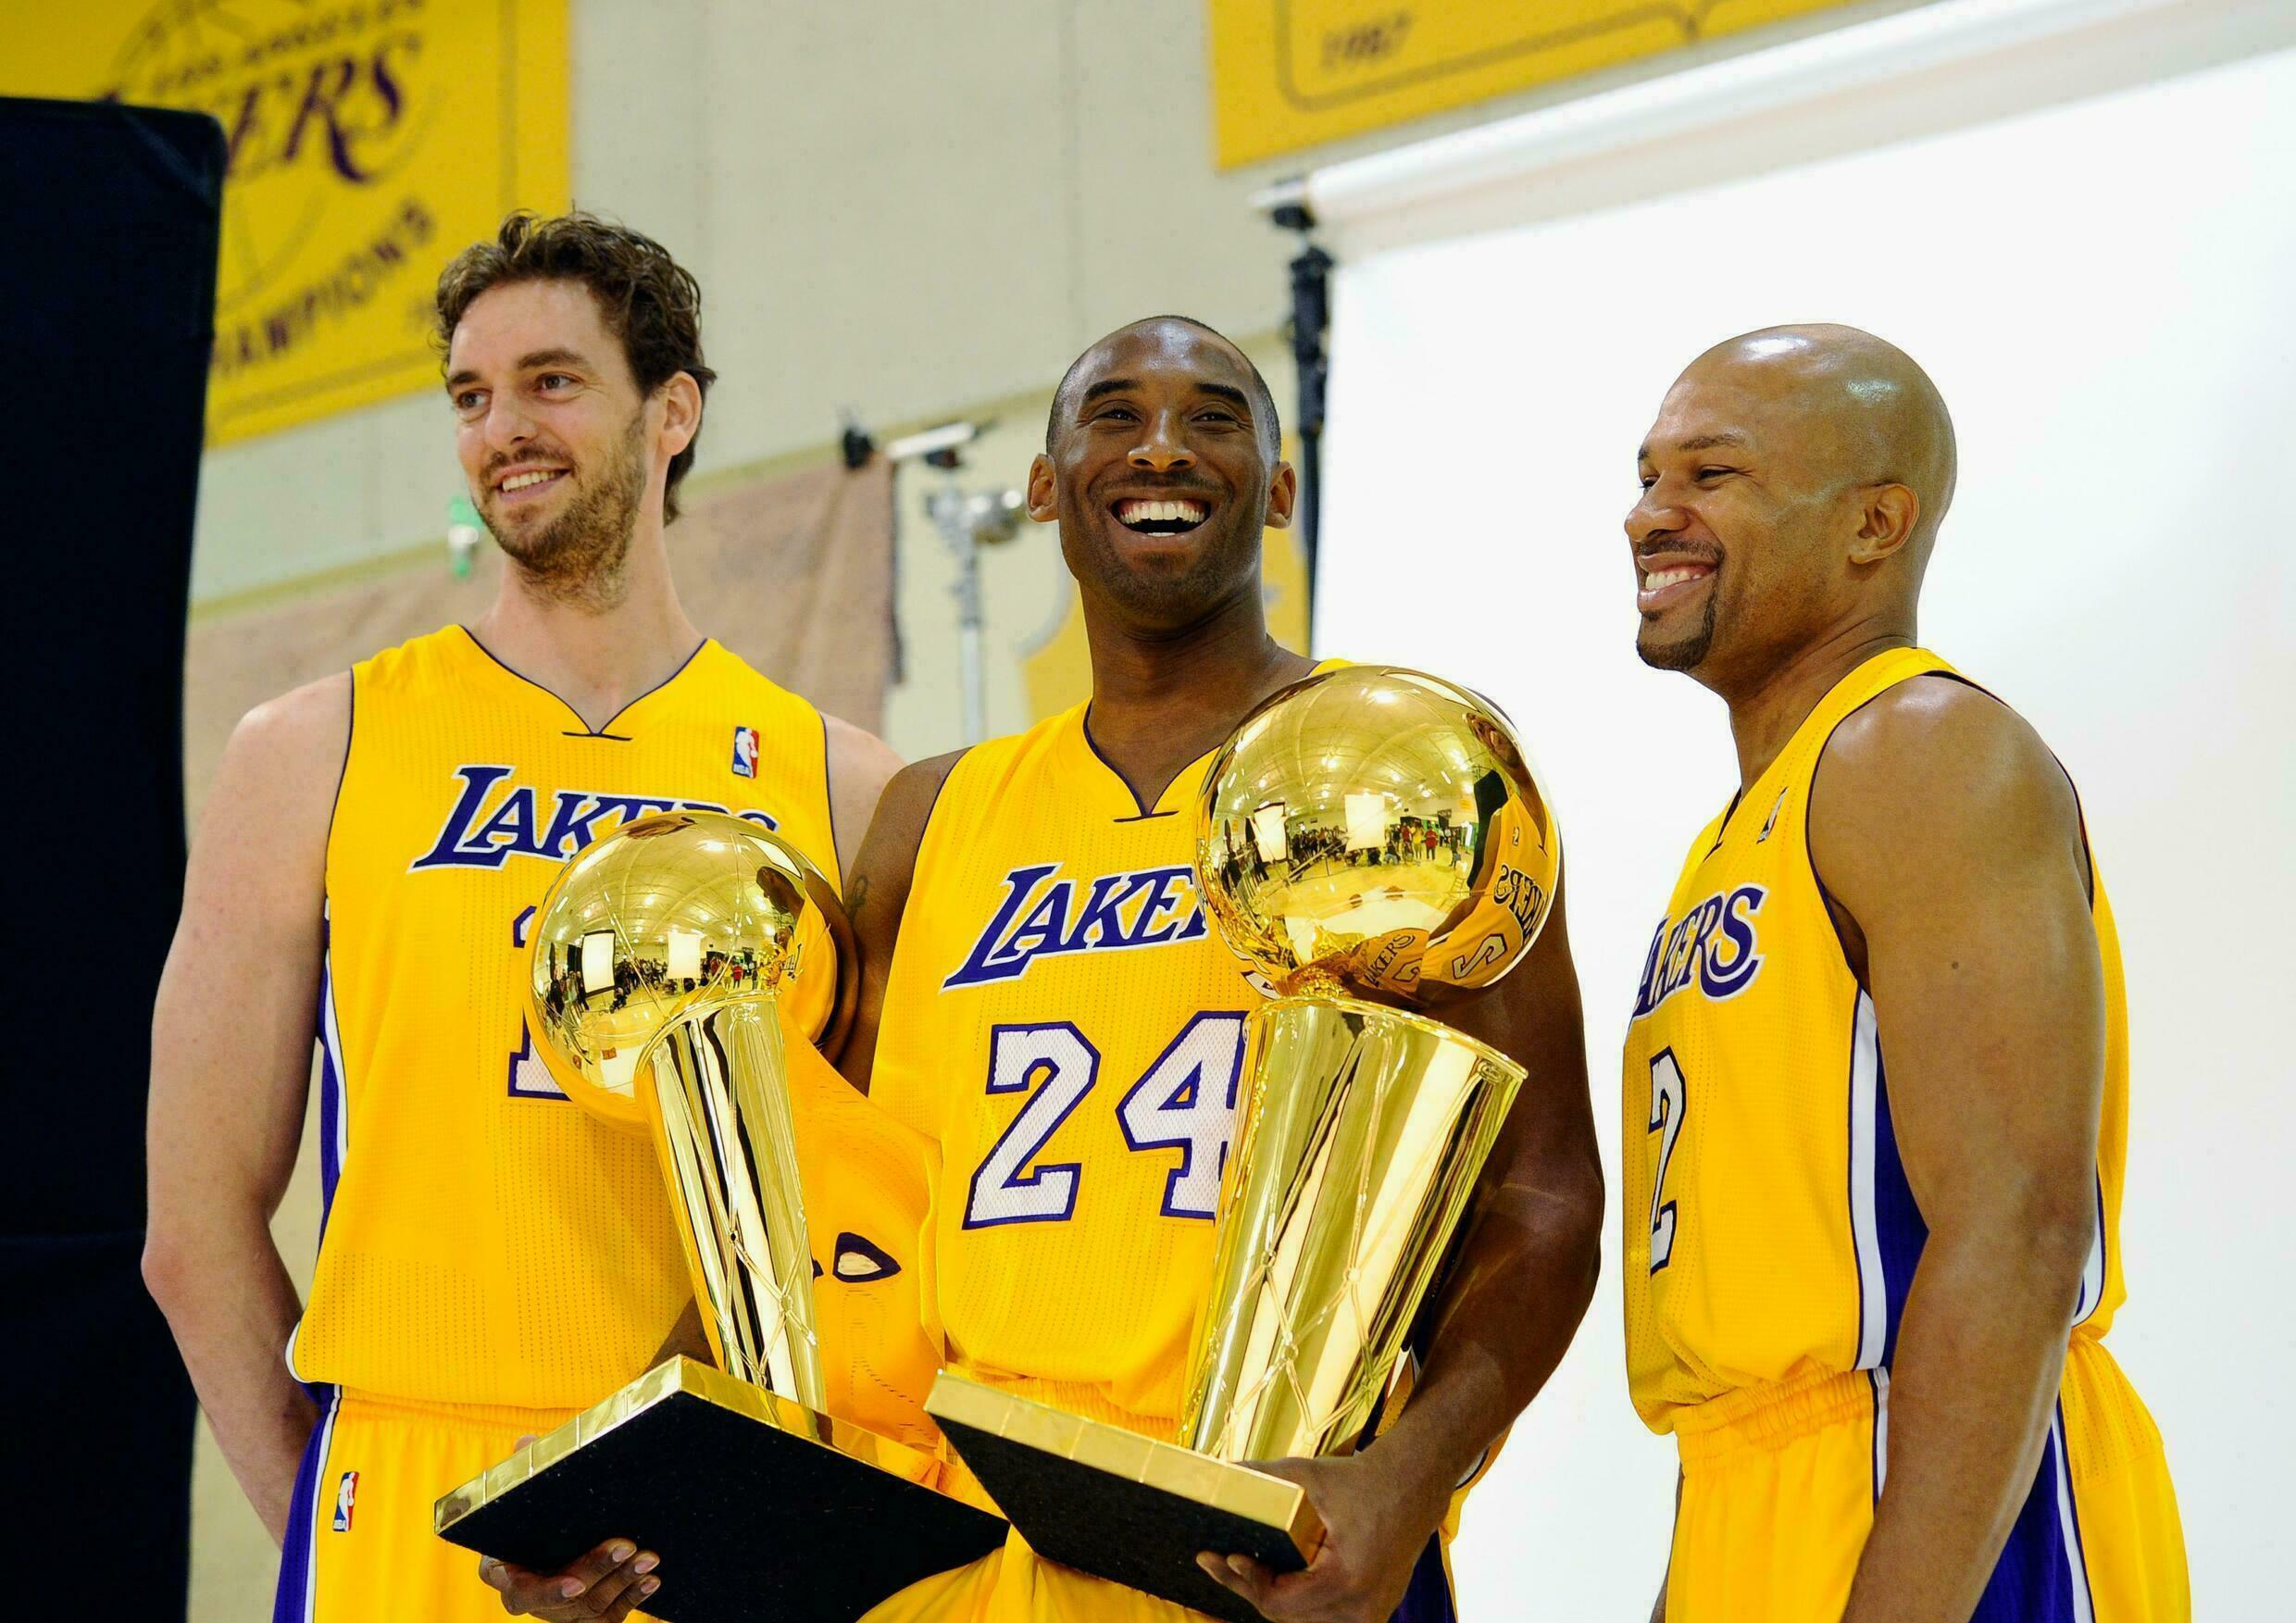 Pau Gasol alongside Kobe Bryant and Derek Fisher after the NBA title won by the Los Angeles Lakers in 2010.